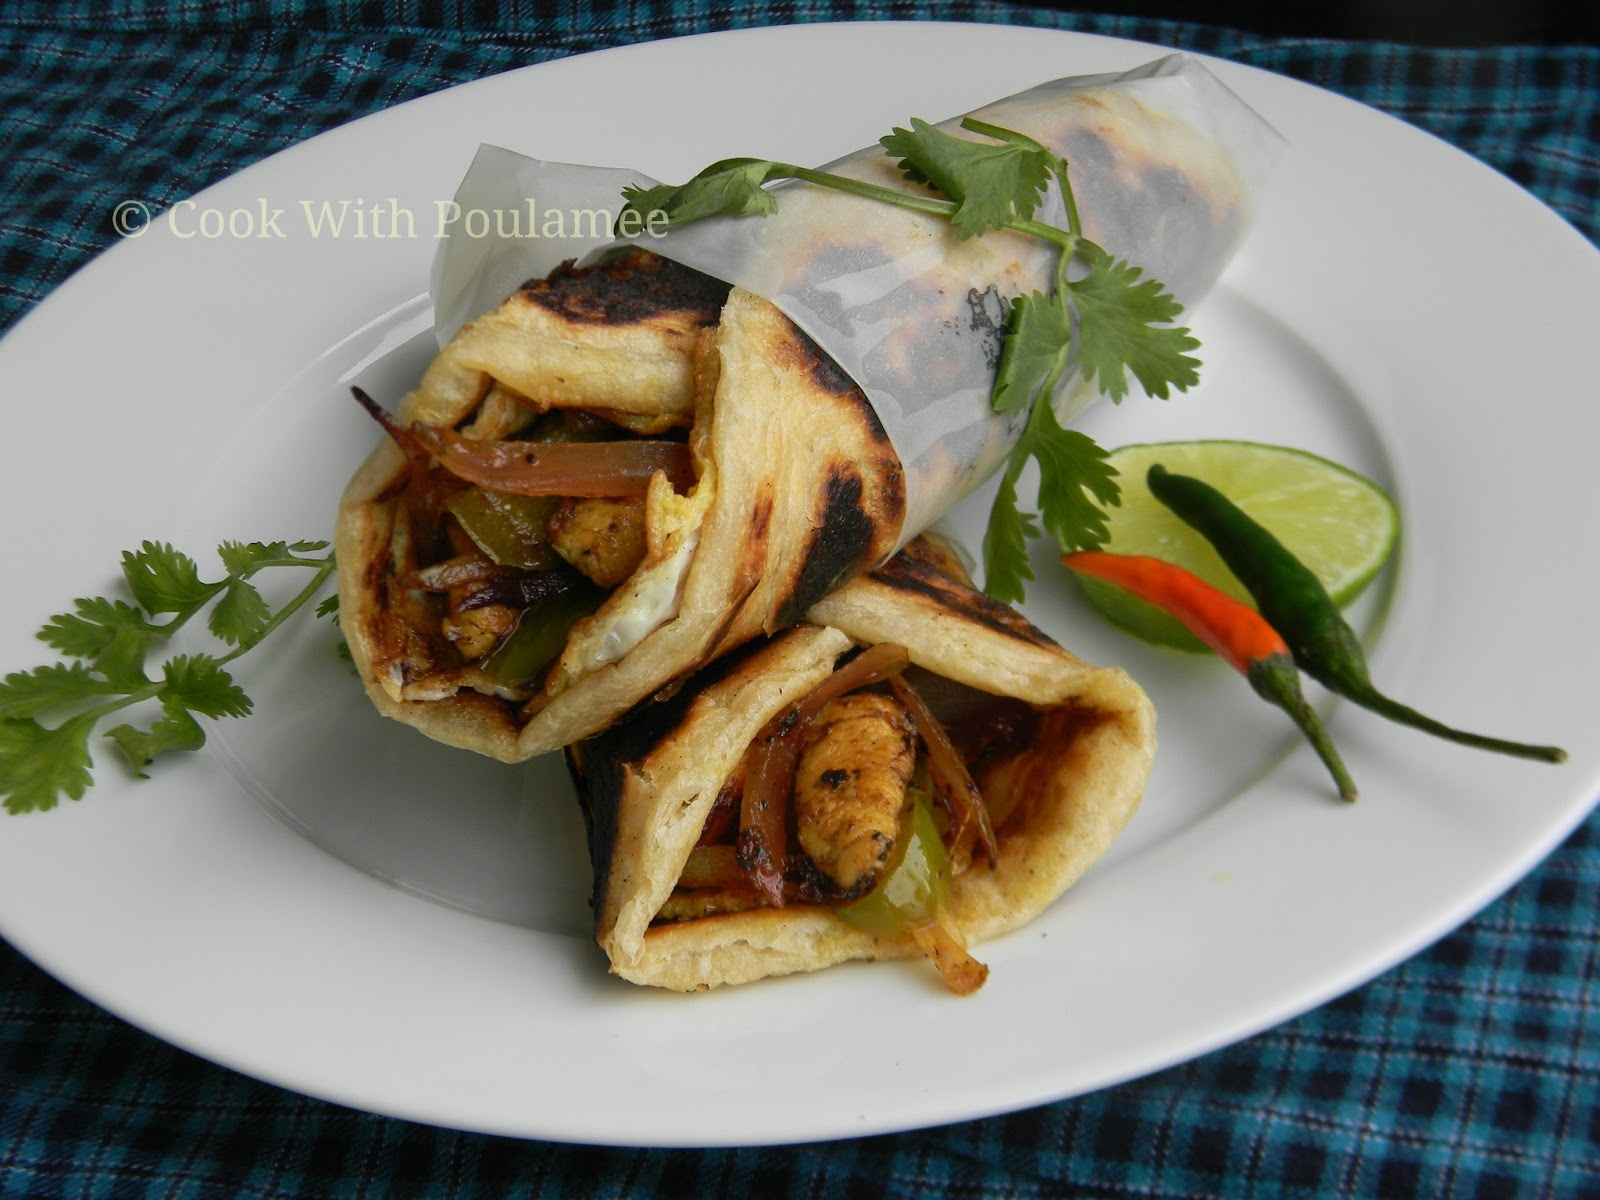 Cook with poulamee egg chicken kathi roll a famous street food cook with poulamee egg chicken kathi roll a famous street food from kolkata forumfinder Image collections